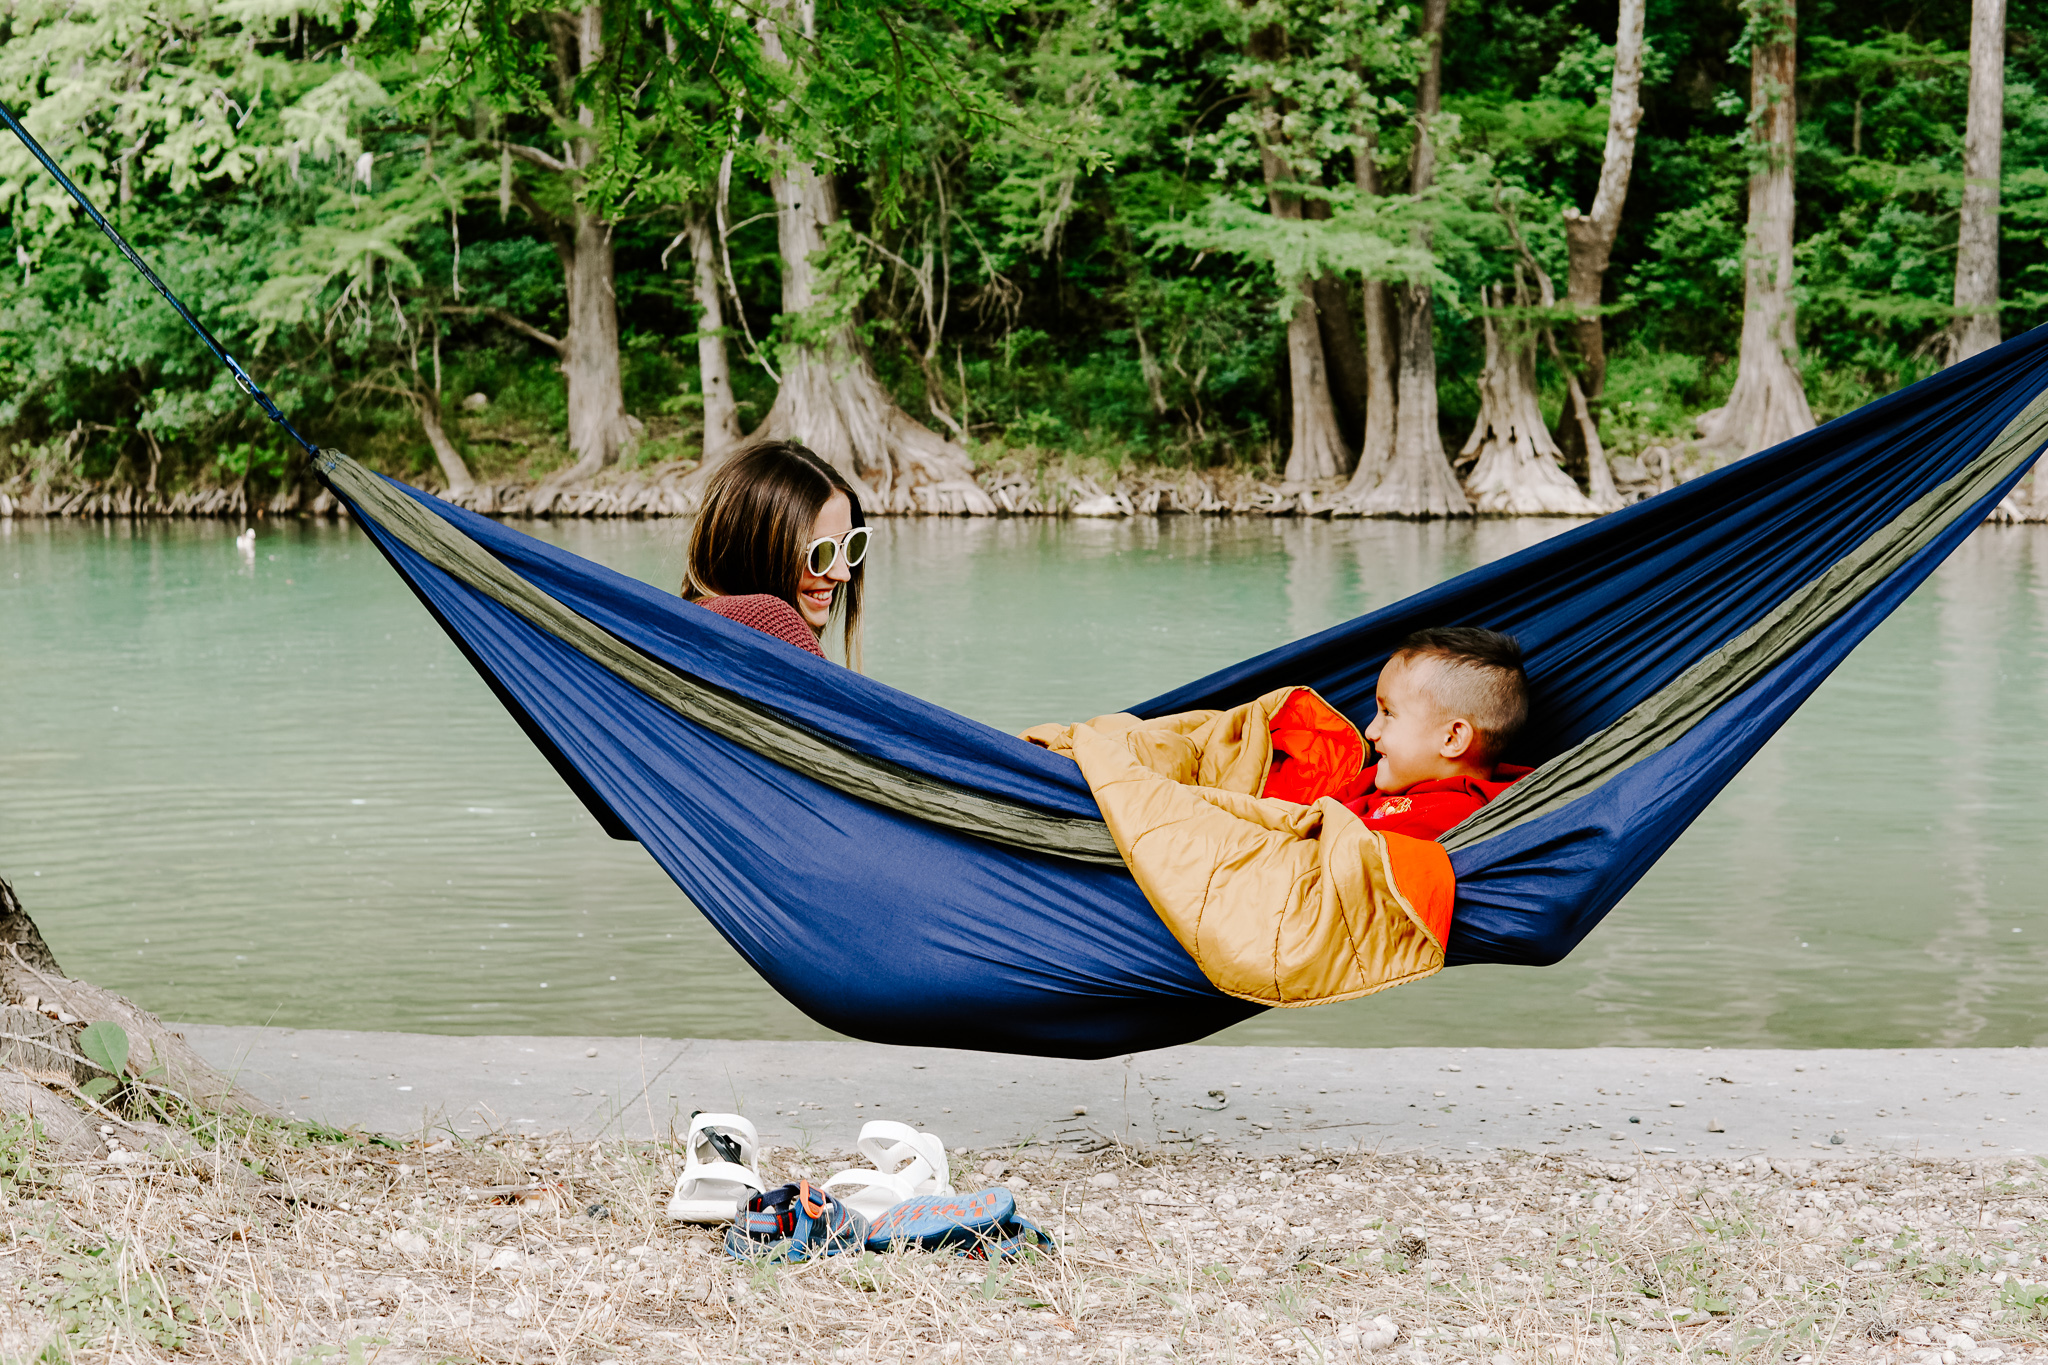 A woman and her son share a DoubleNest hammock by the water.